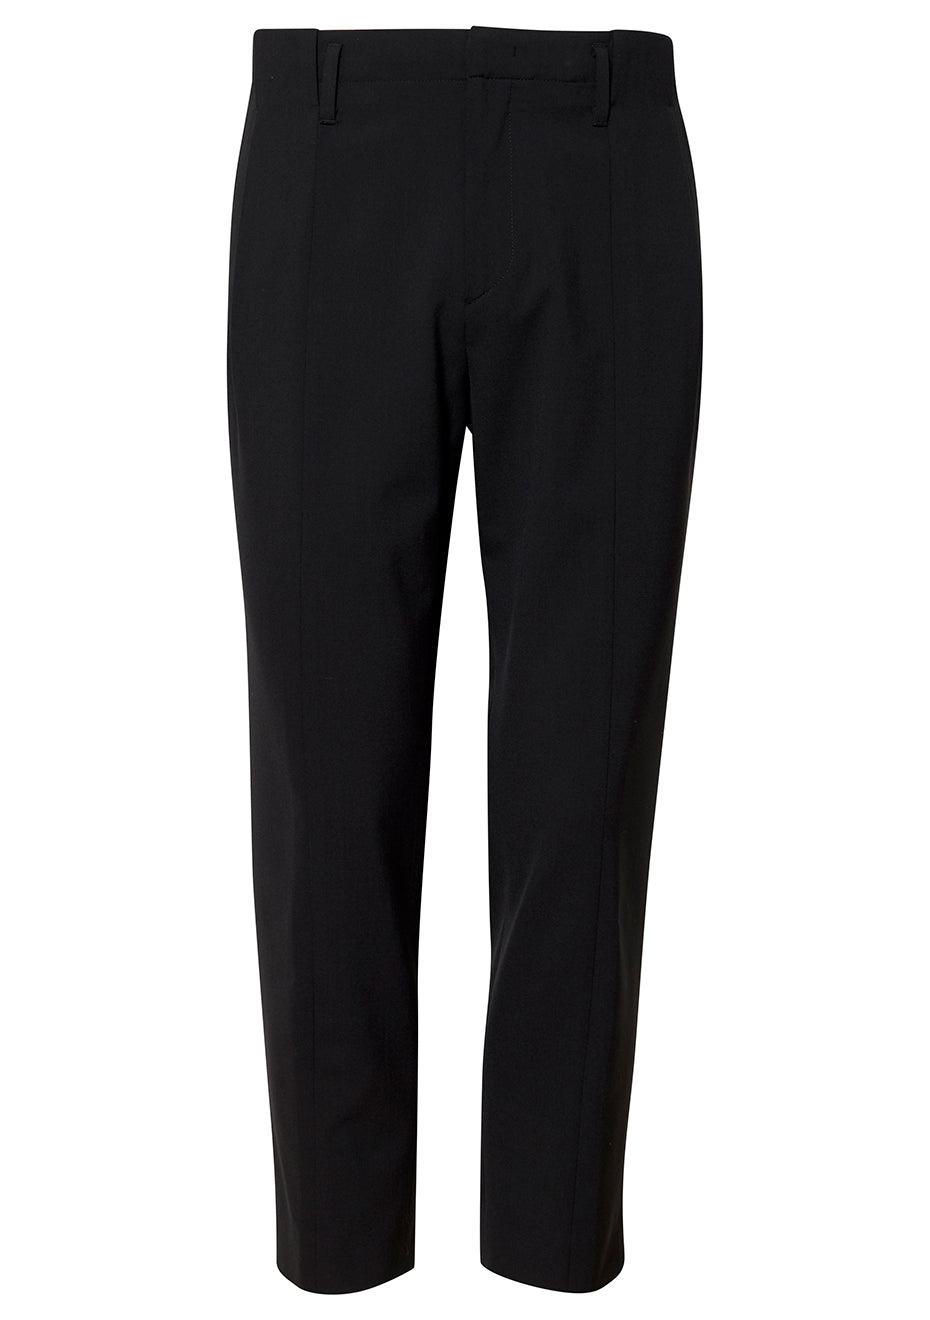 Black Tailored Pants